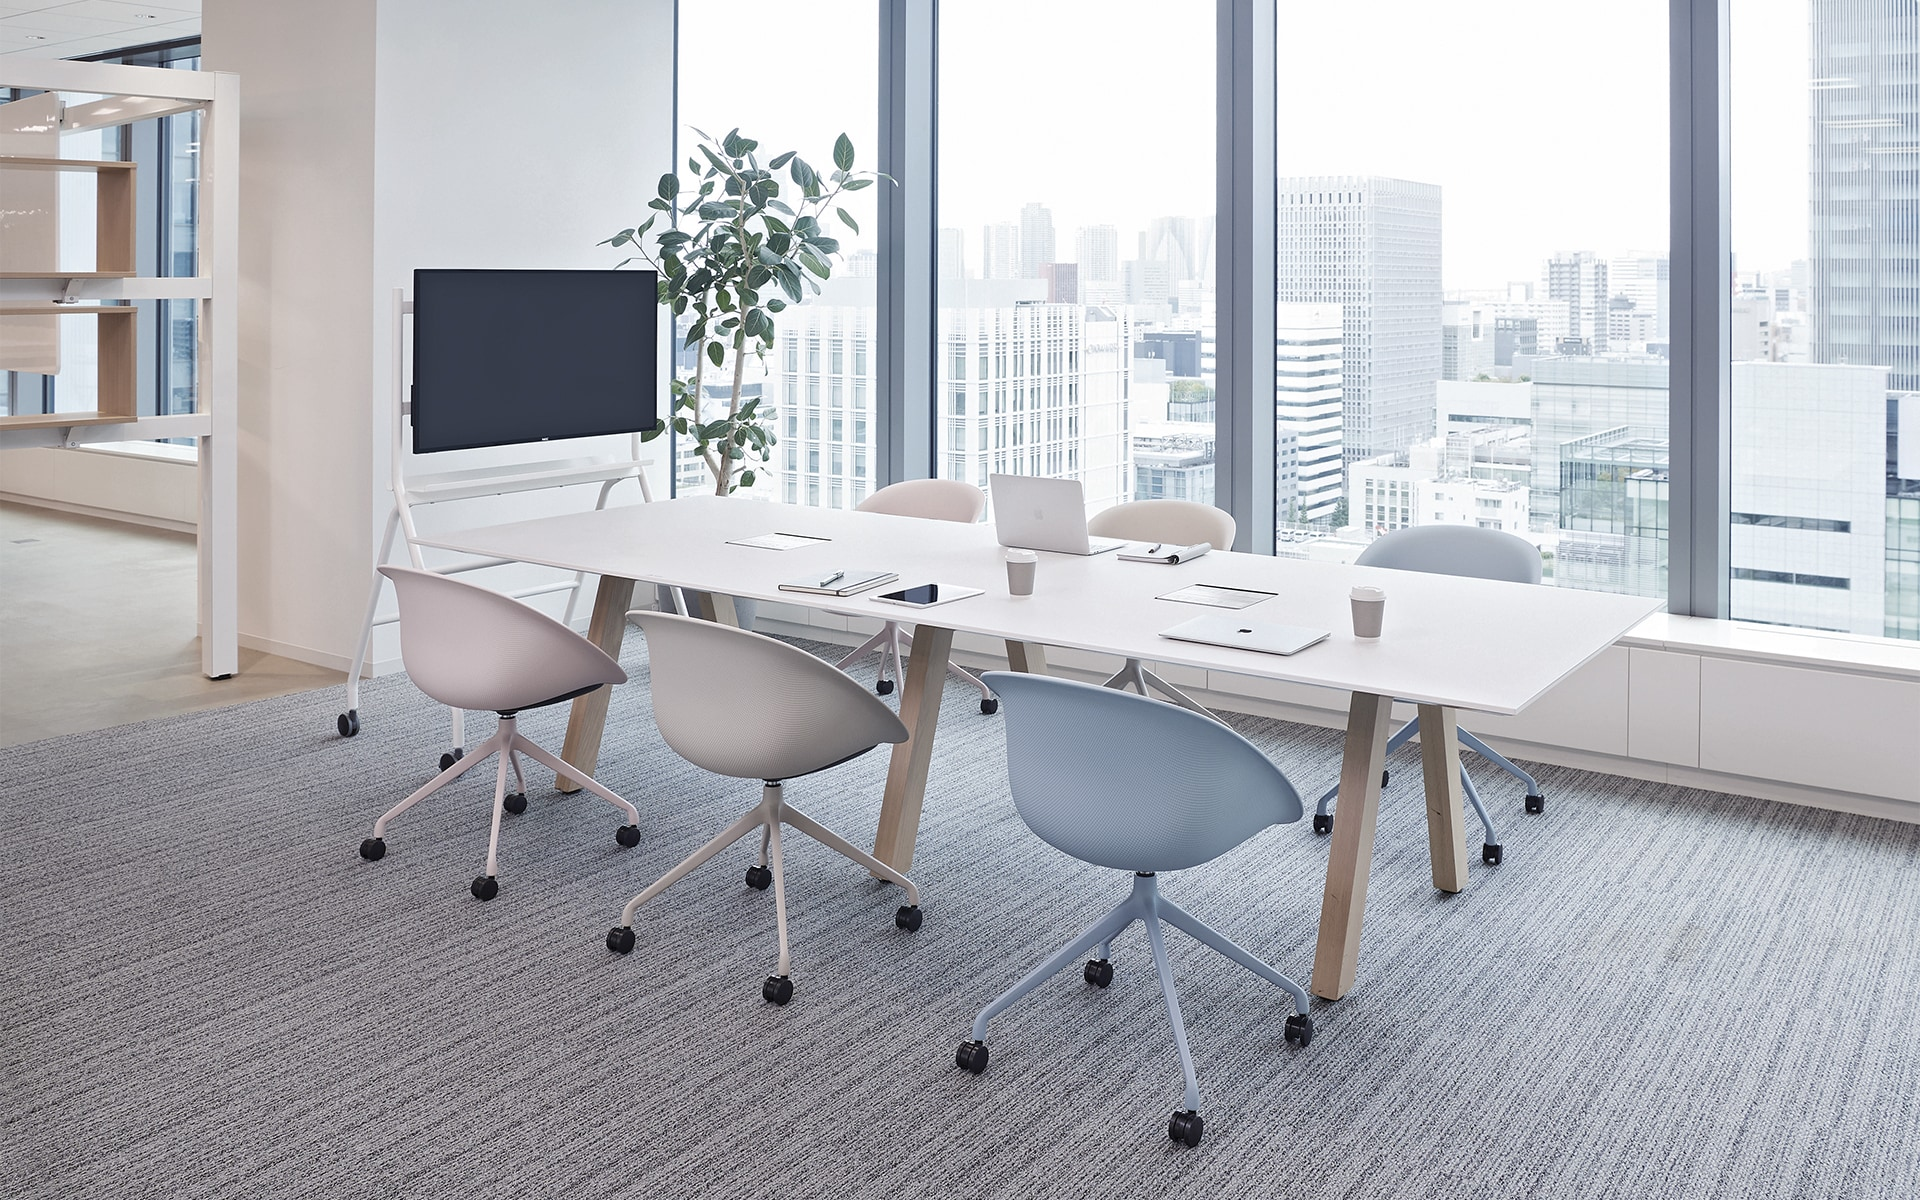 A bright conference room with six ITOKI Wan shell chairs by ITO Design in pale pink, white and pastel blue